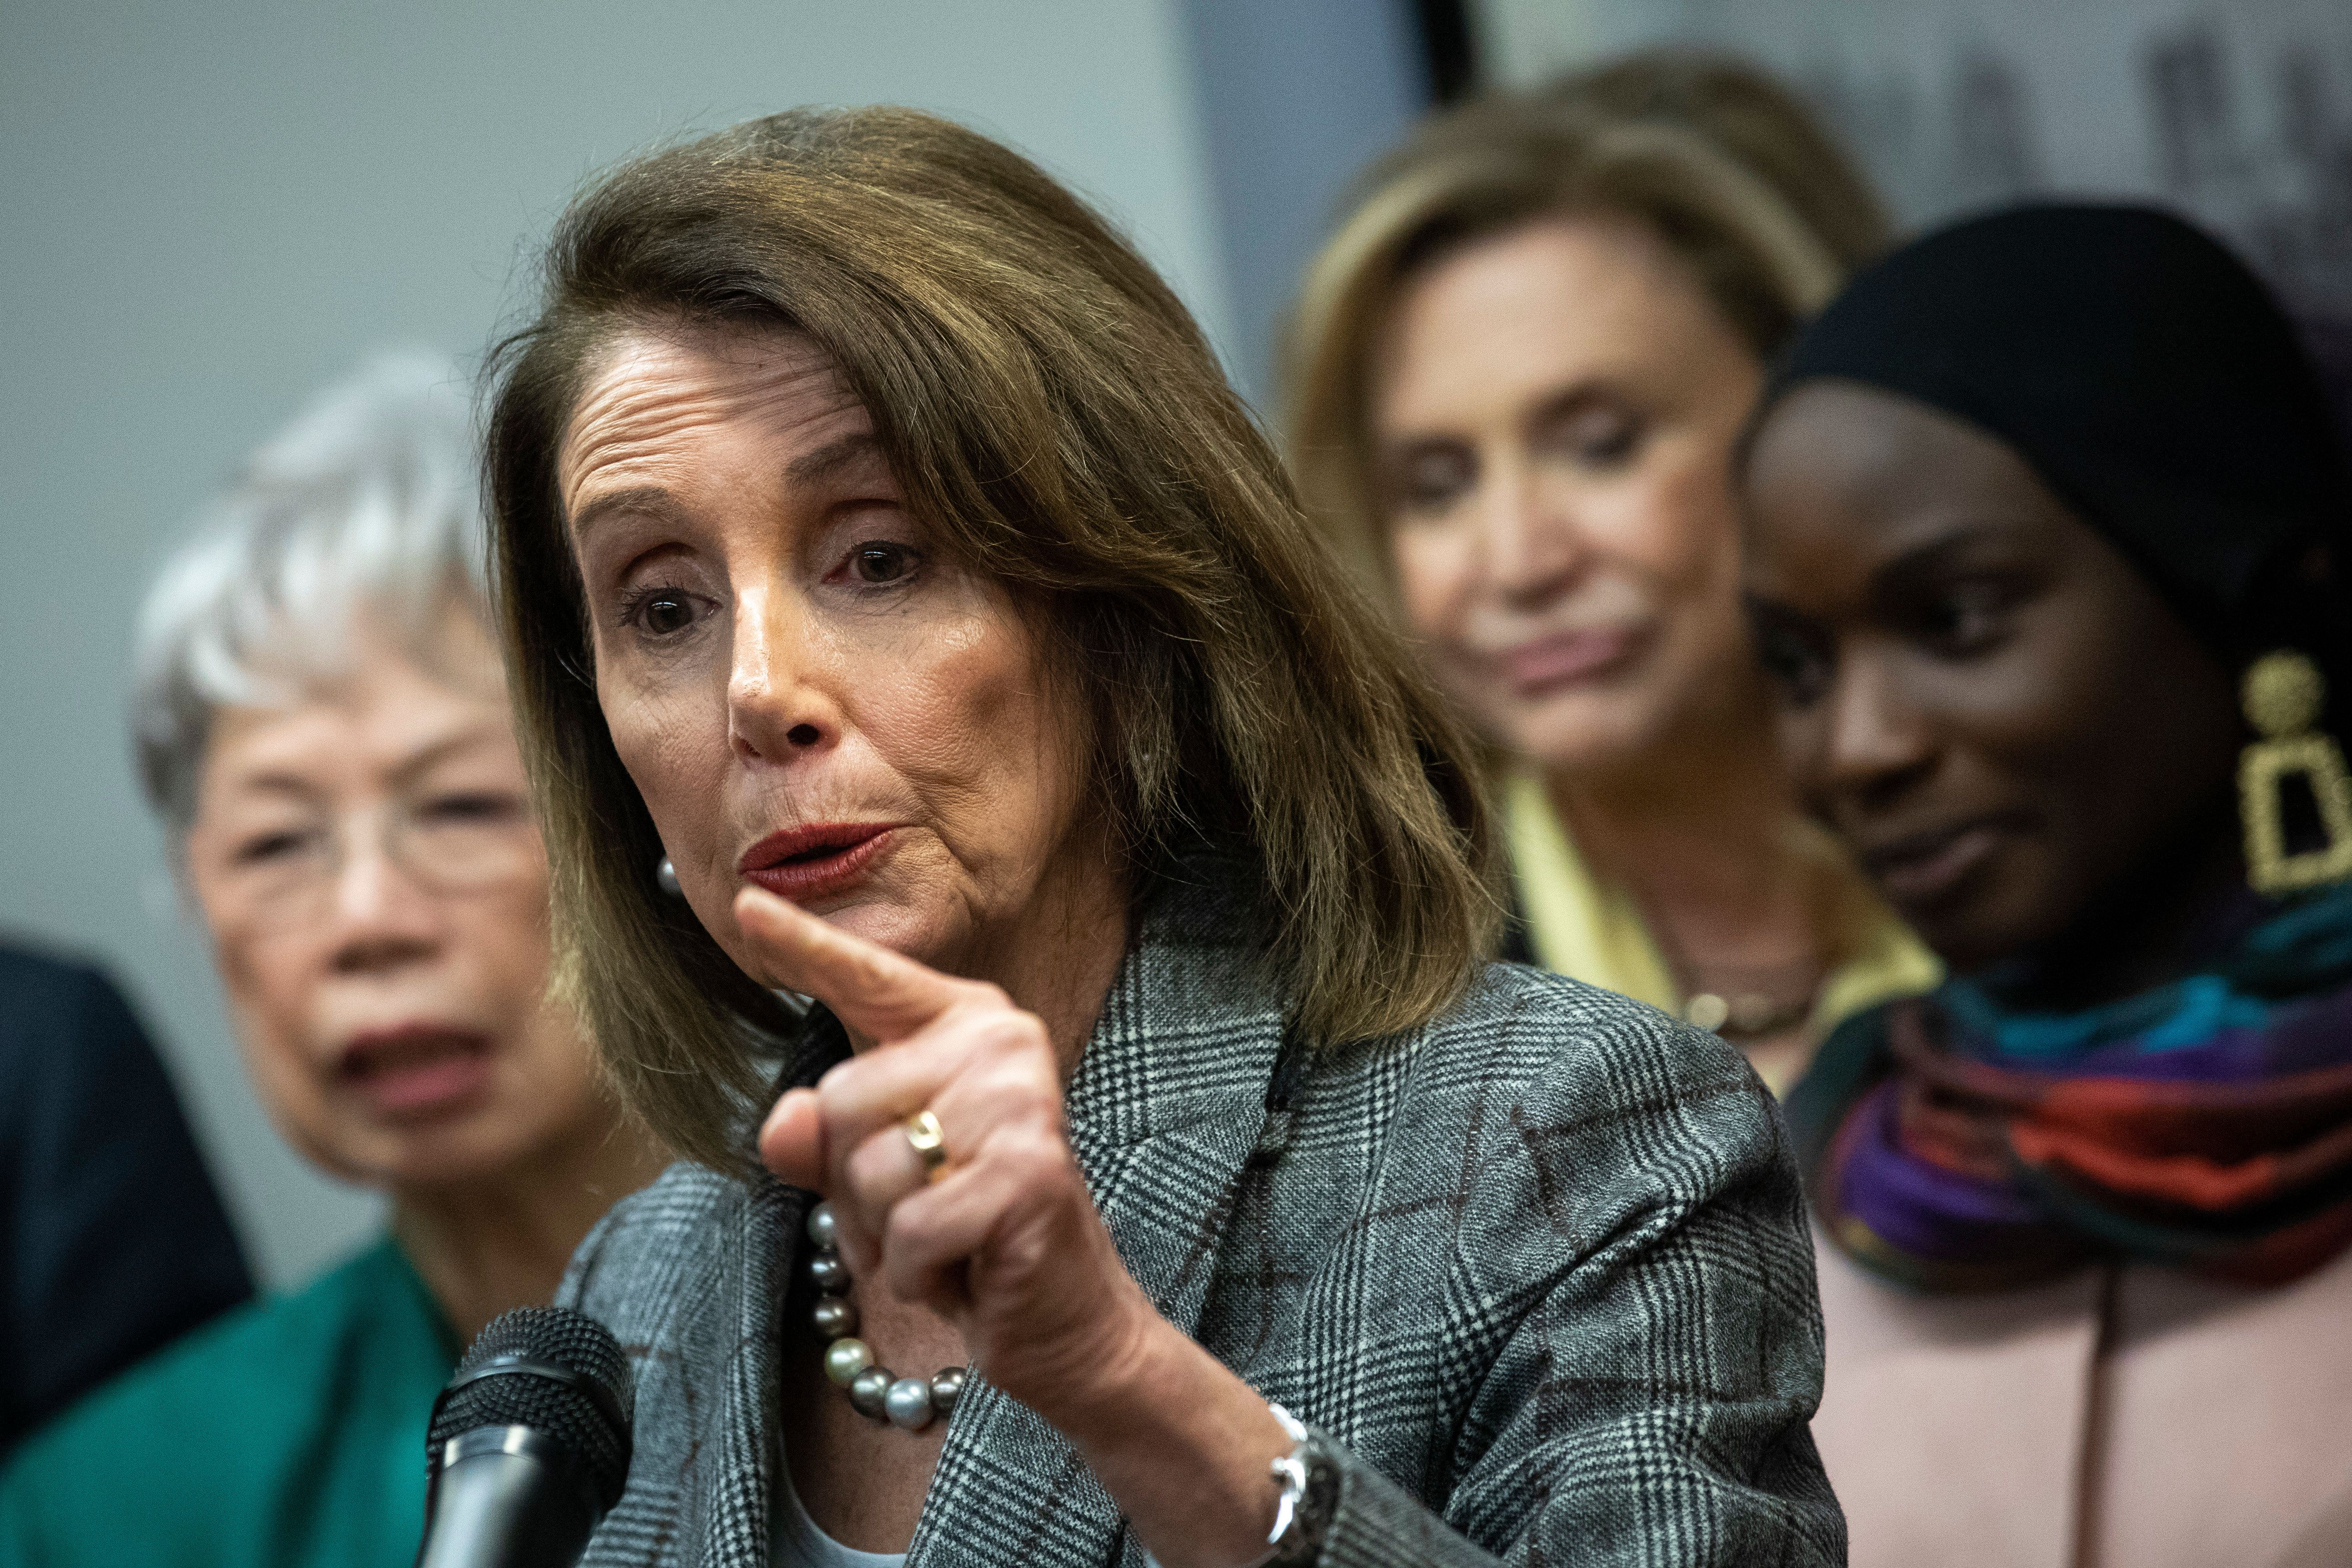 Nancy Pelosi Vows To Reject Classified Briefing On Mueller Report